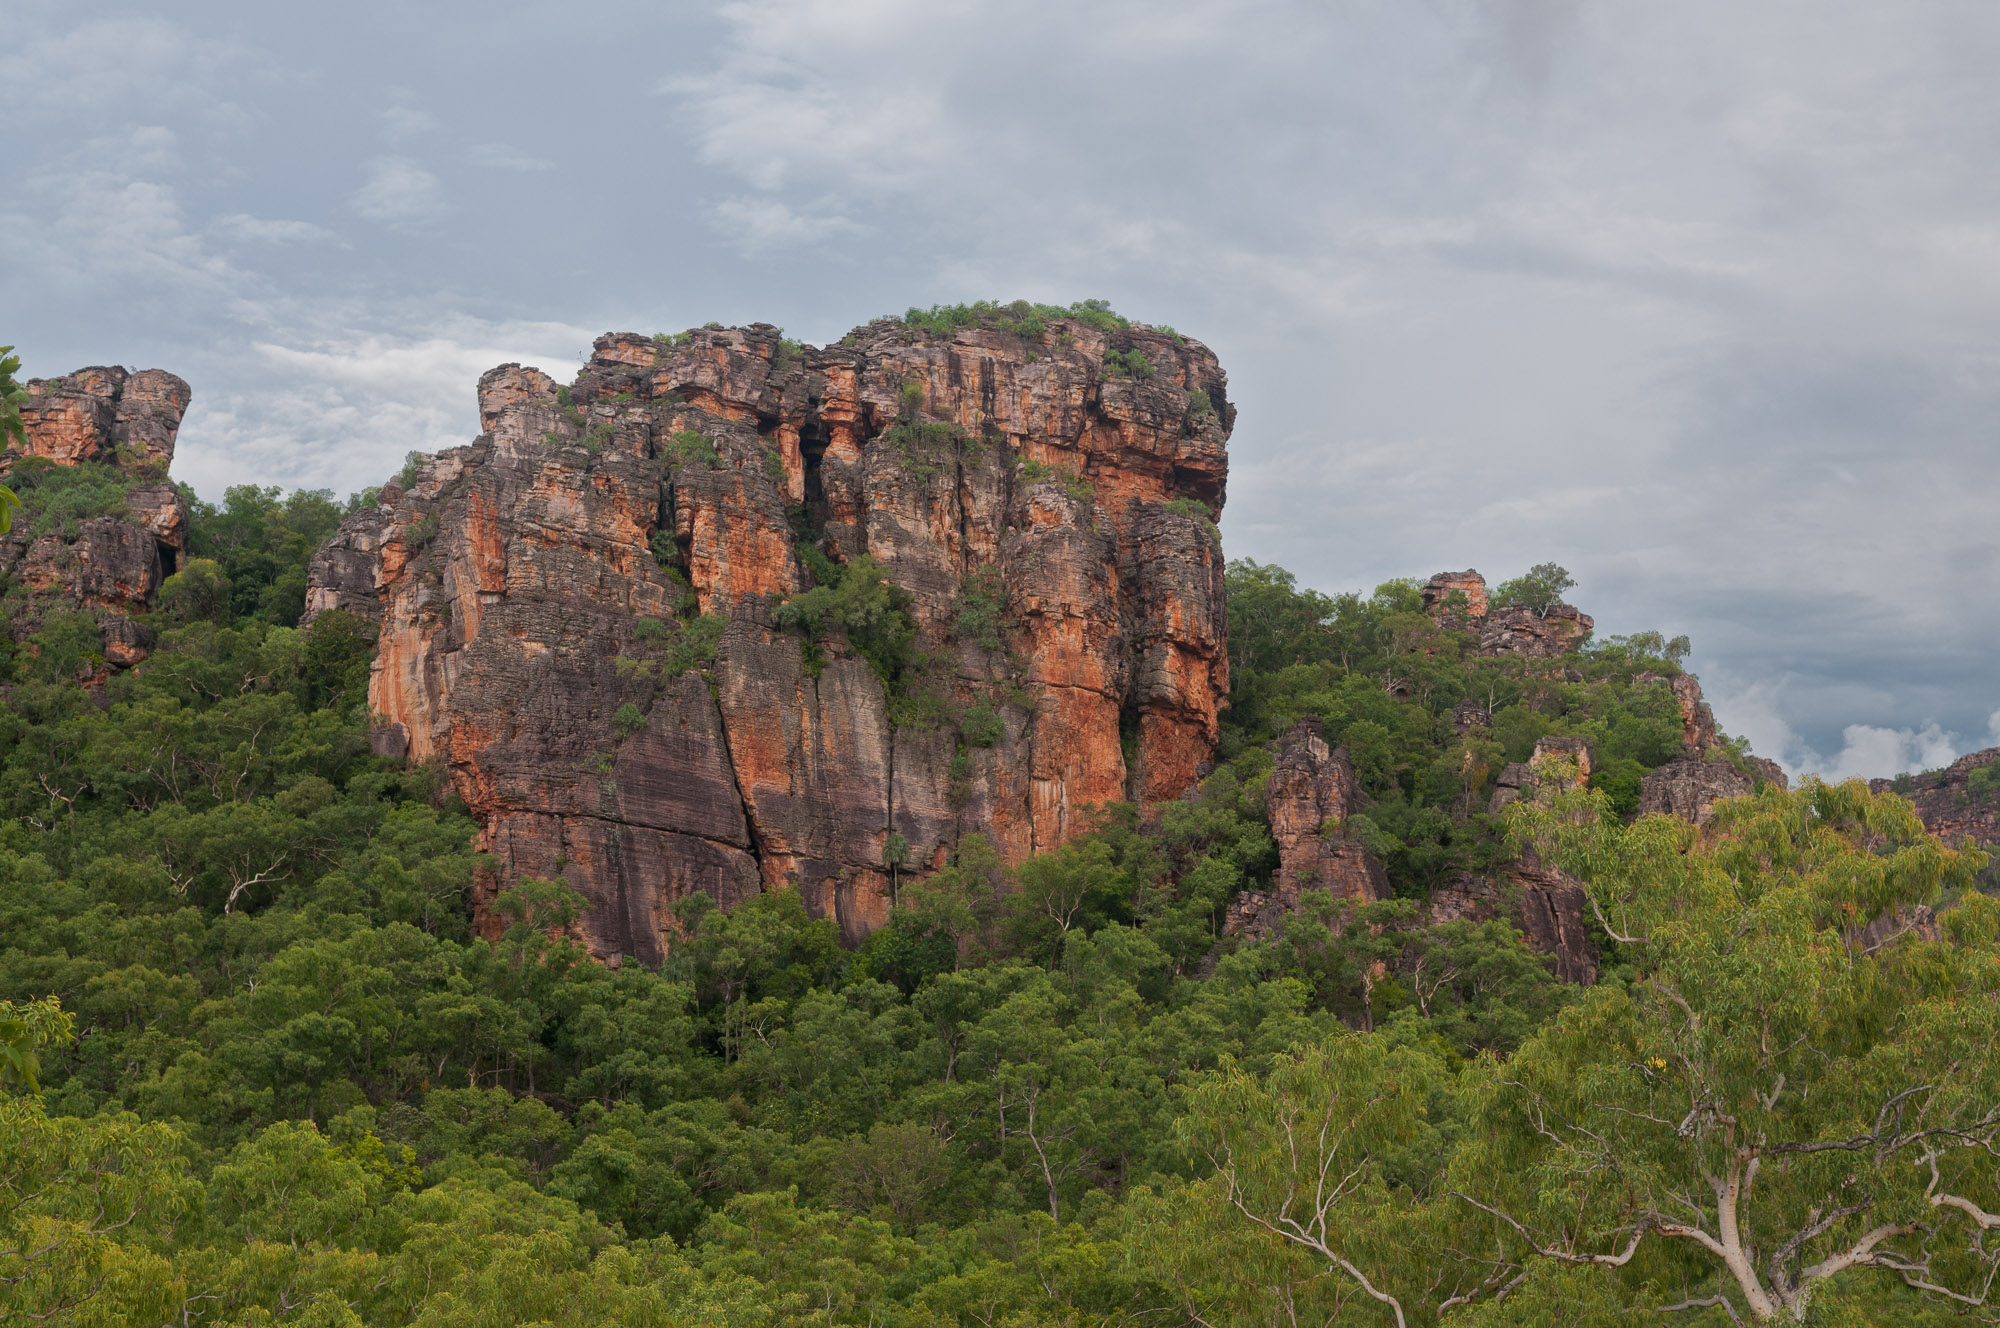 Arnhem Land Escarpment - Kakadu National Park, Northern Territory, Australia